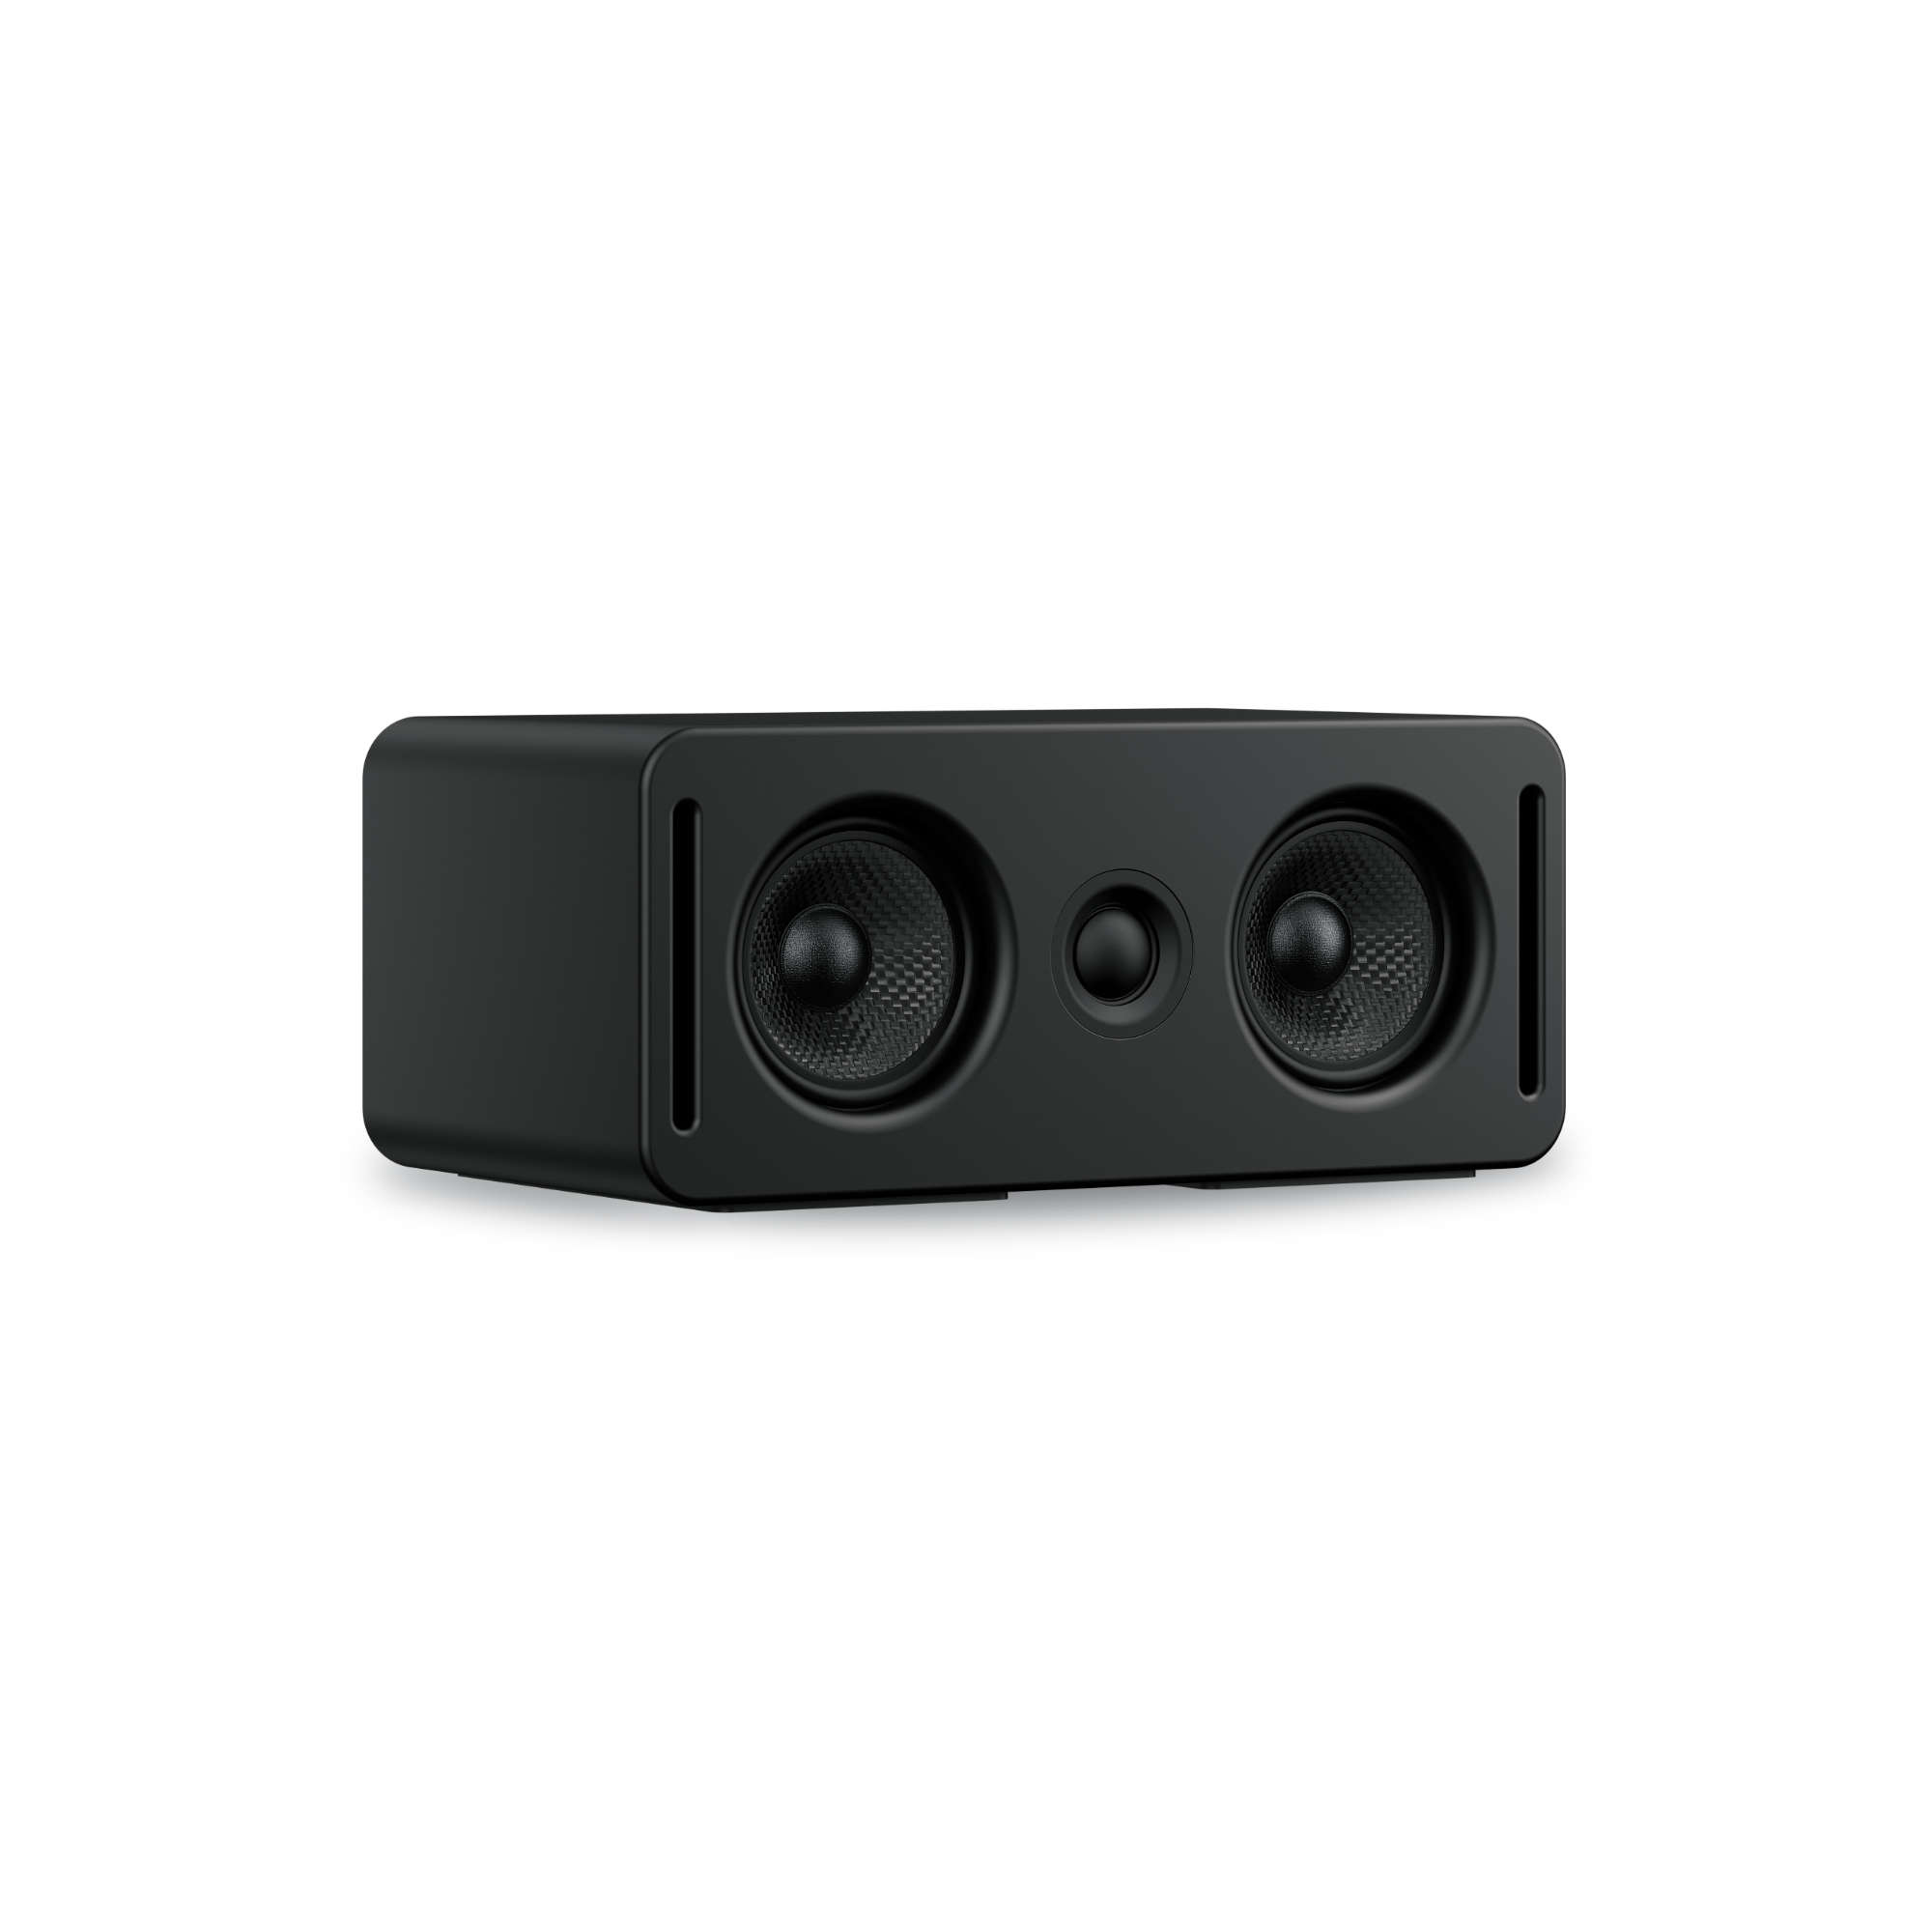 5.1 center channel speaker on a white background